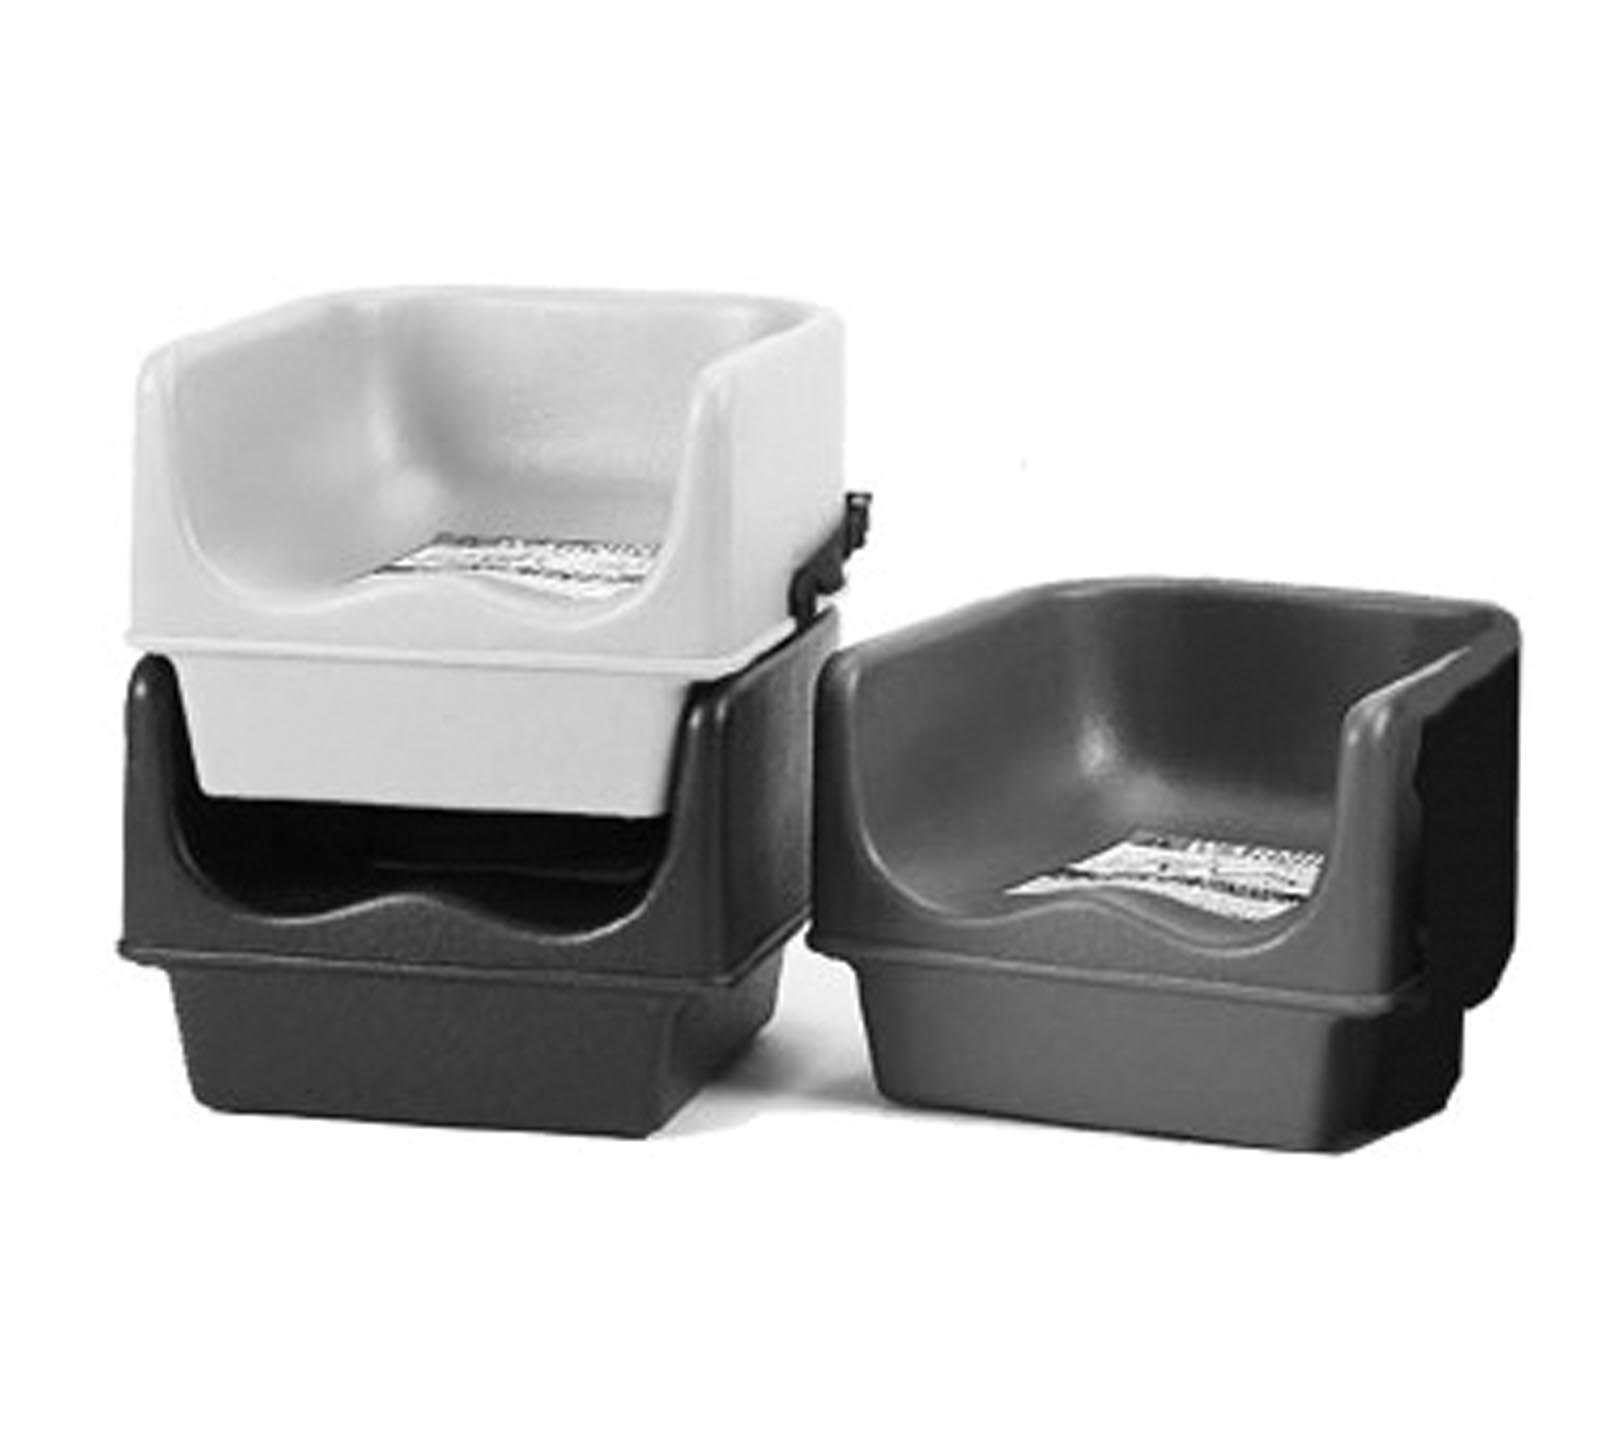 Cambro Single Booster Seat with Strap, Navy Blue (100BCS186) Category: Booster Seats